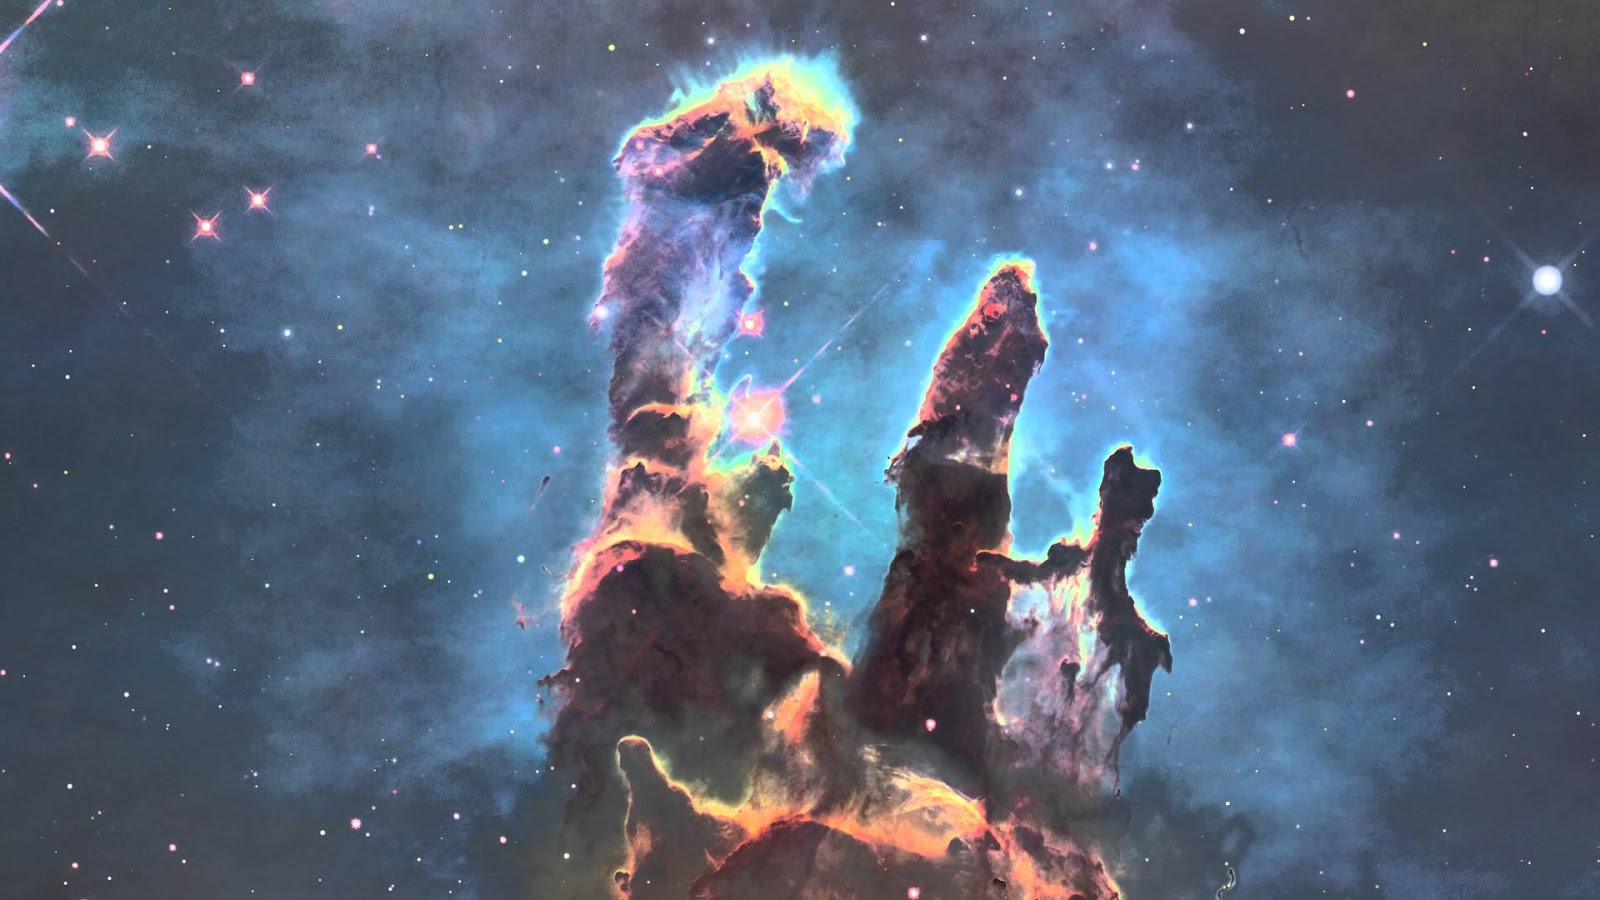 hubble backgrounds pillars of creation - photo #4